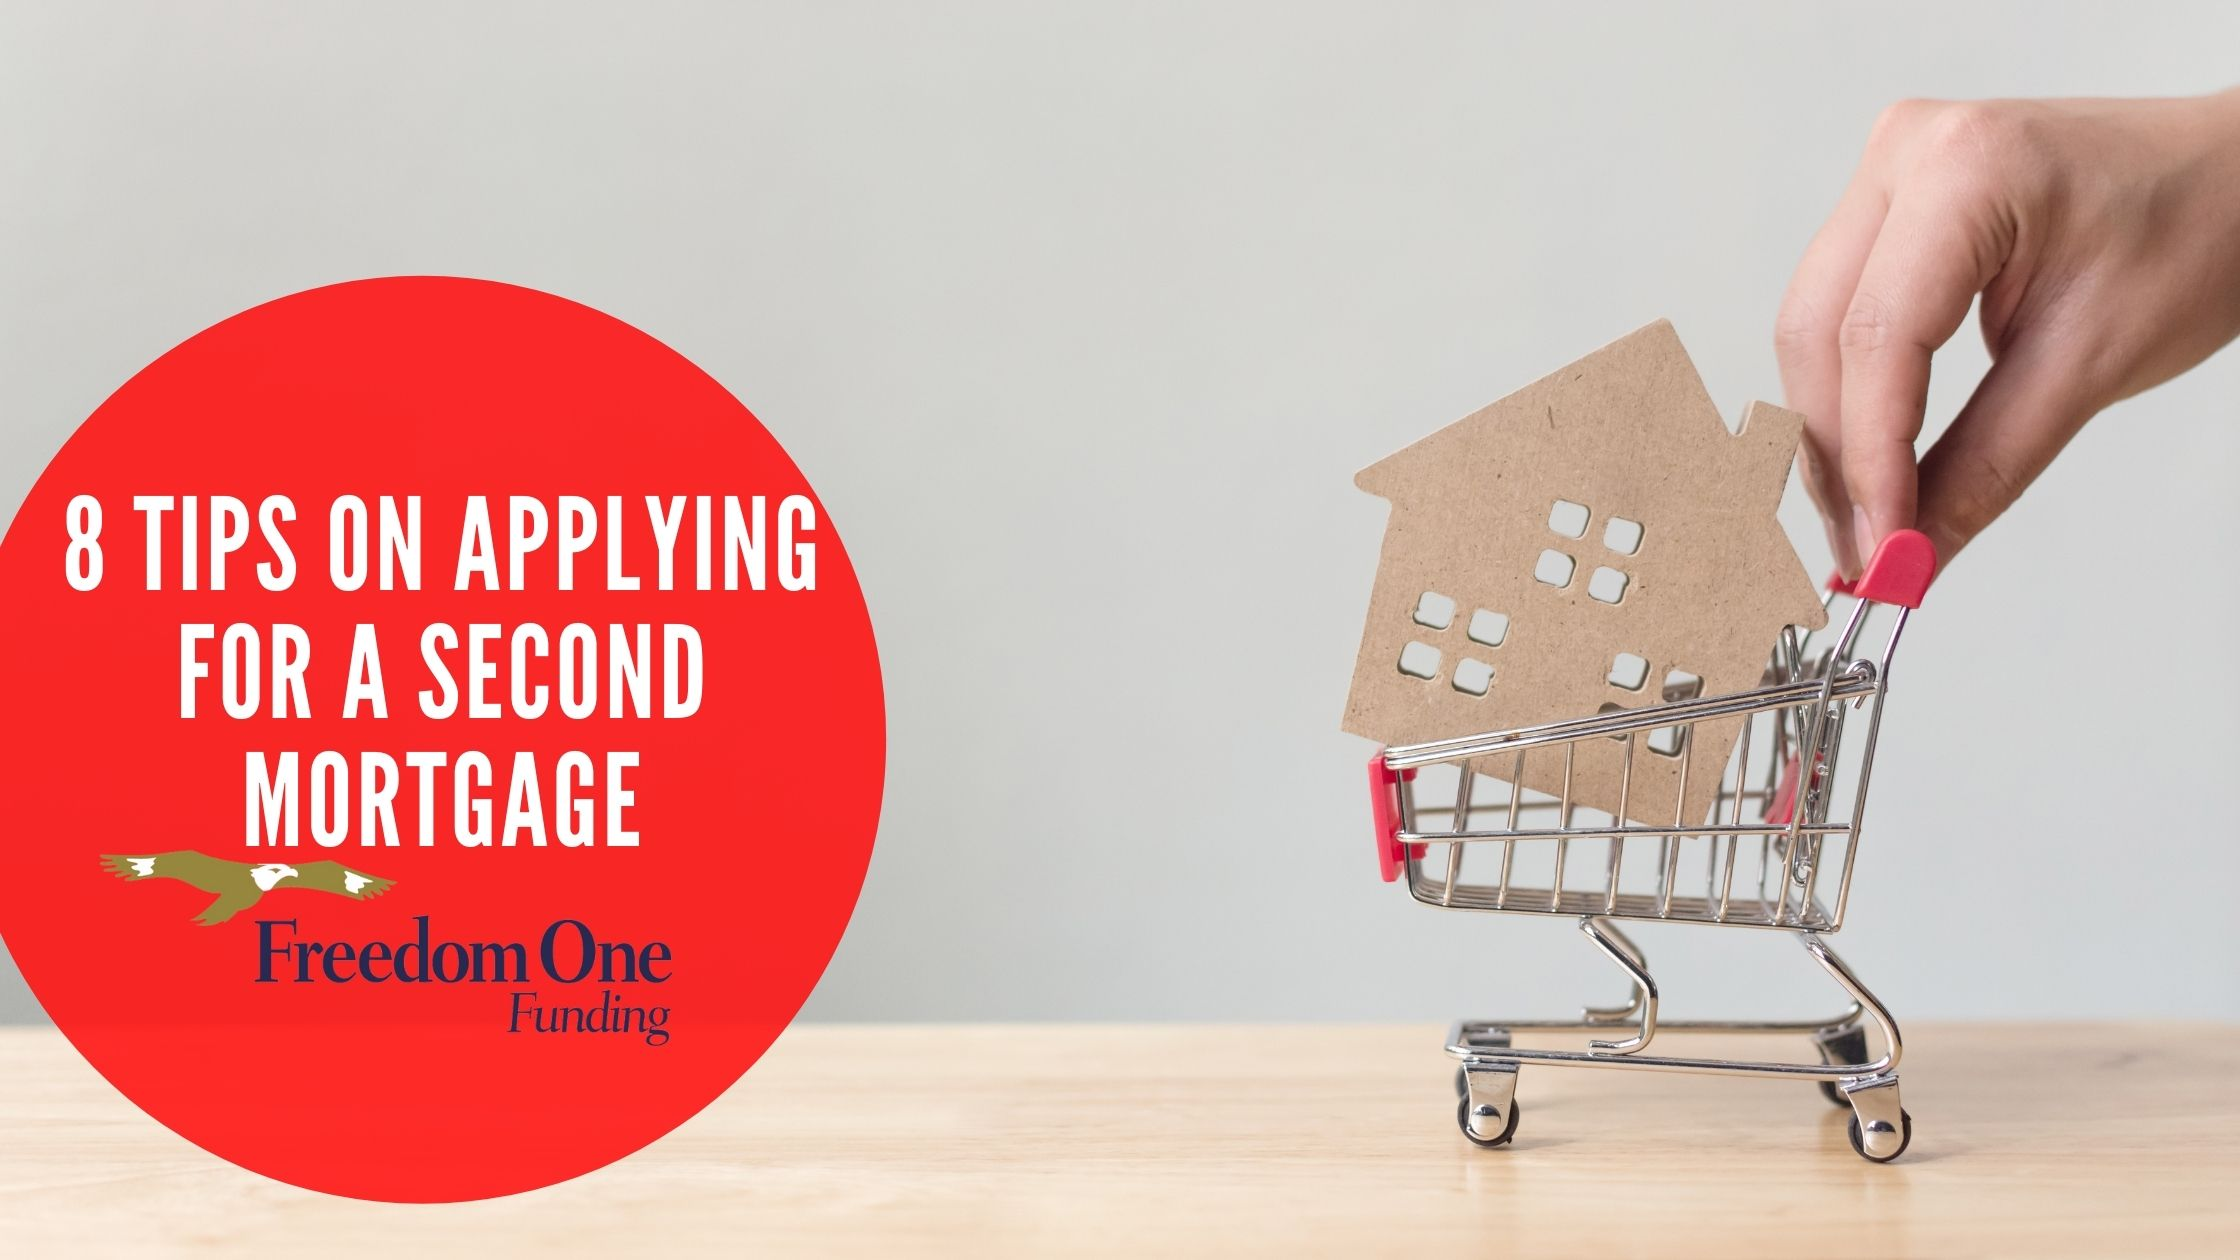 8 Tips on Applying for a Second Mortgage